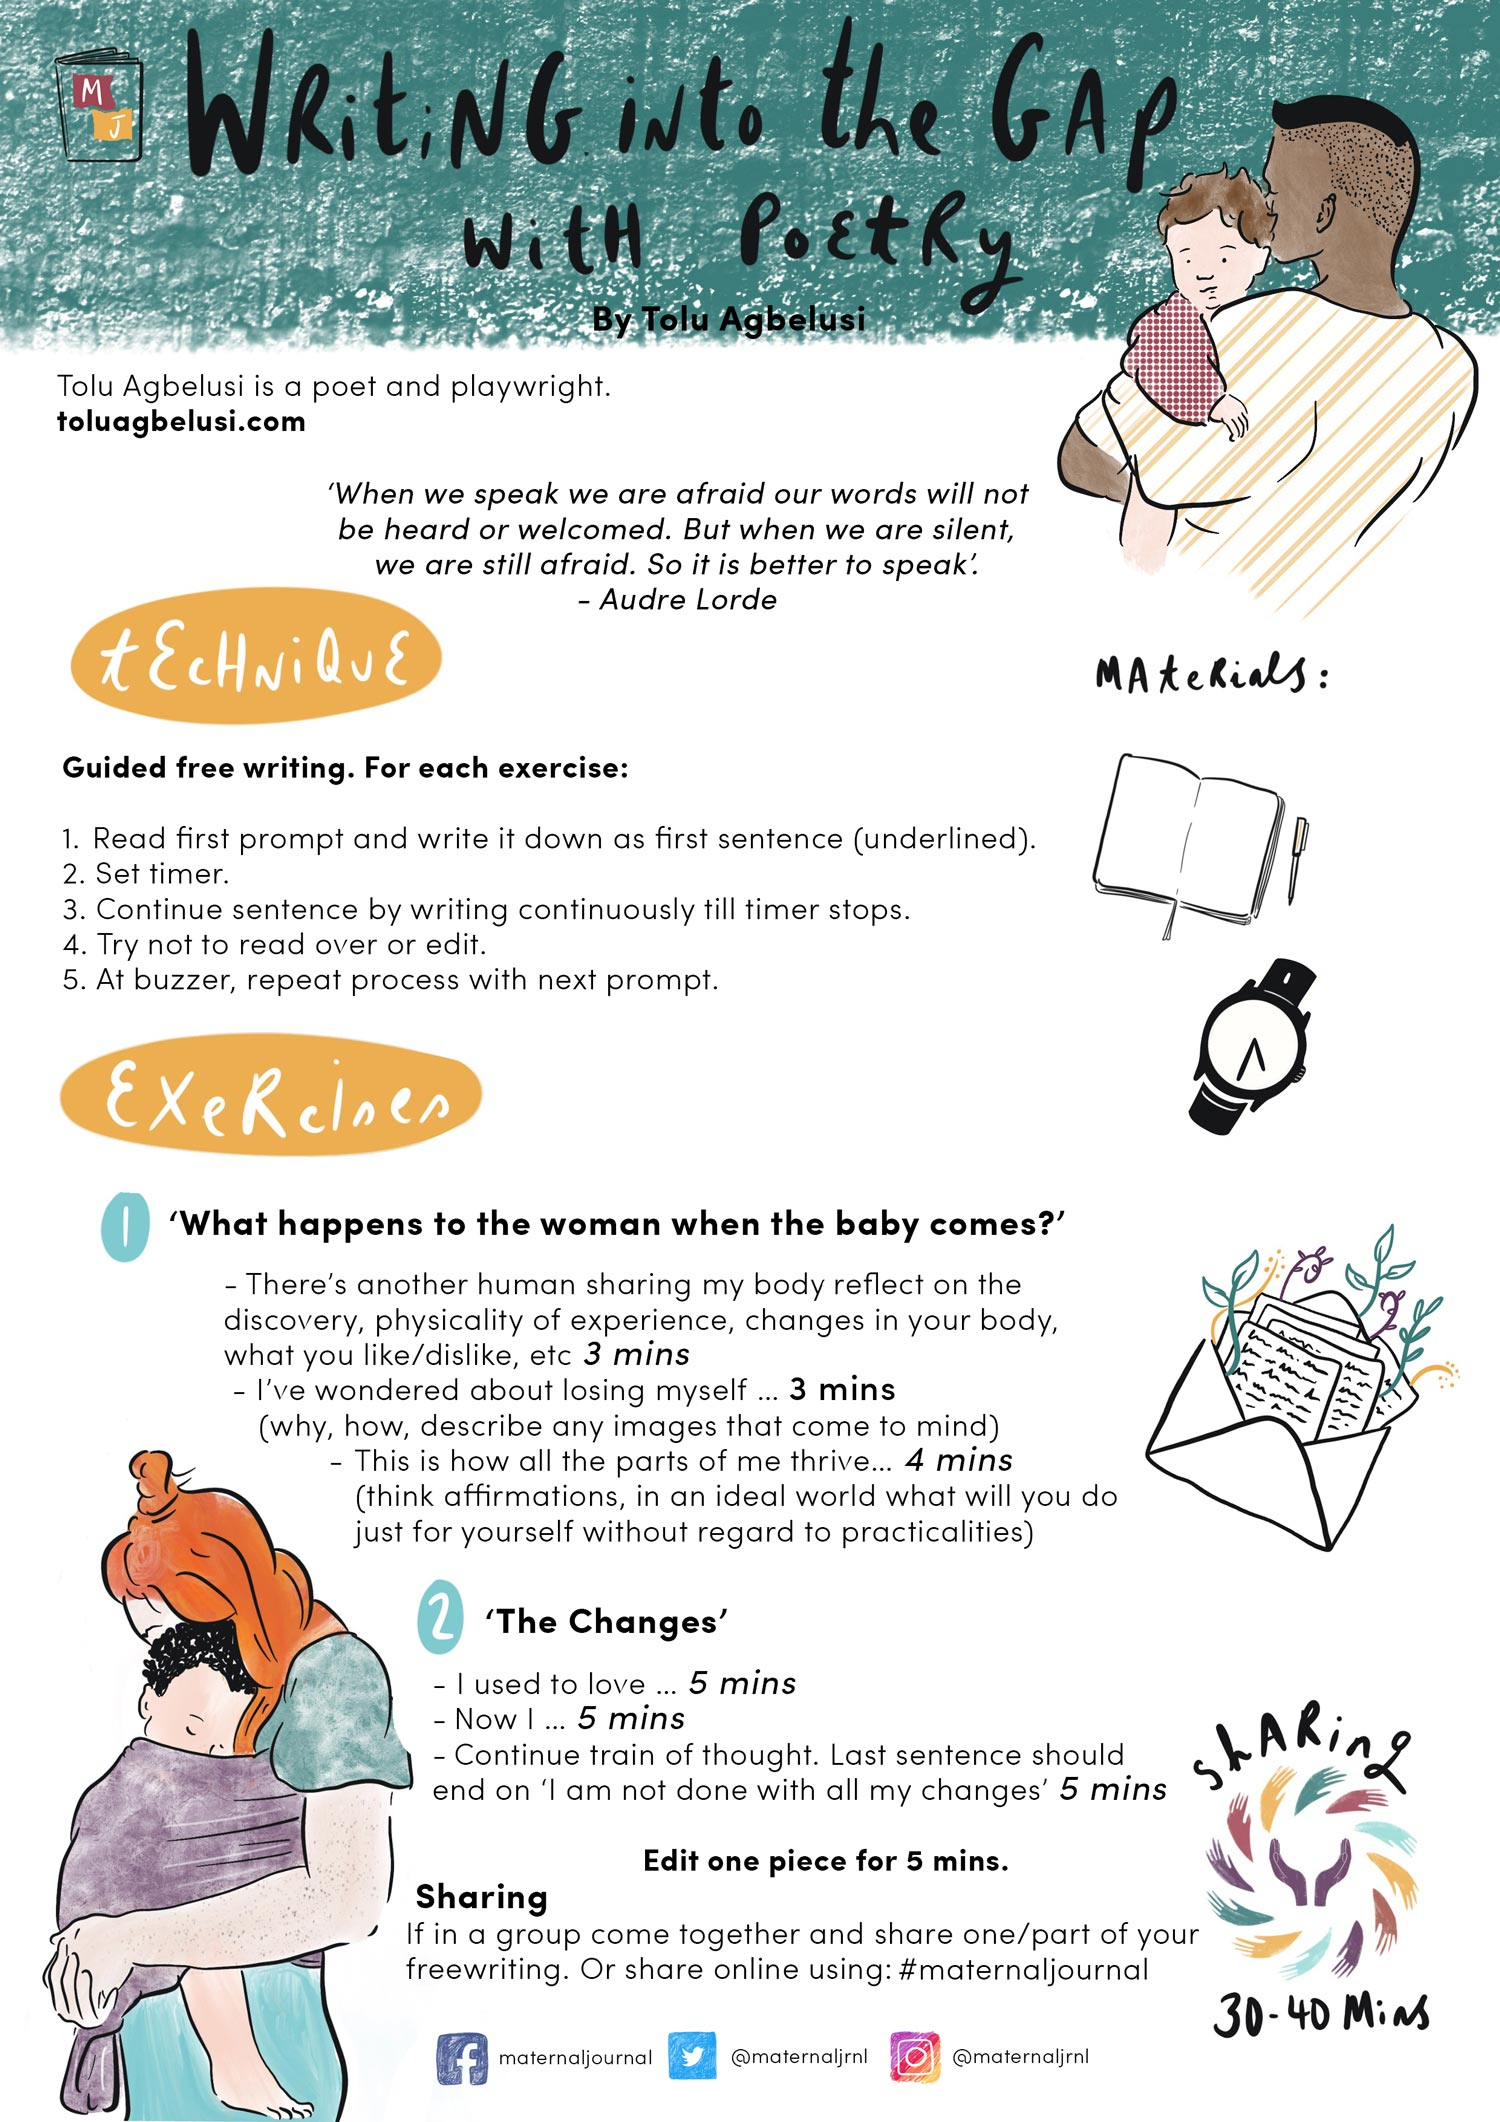 Creative journaling guide | Writing into the gap with poetry by Tolu Agbelusi | Illustration by Merlin Strangeway | Maternal Journal 2019